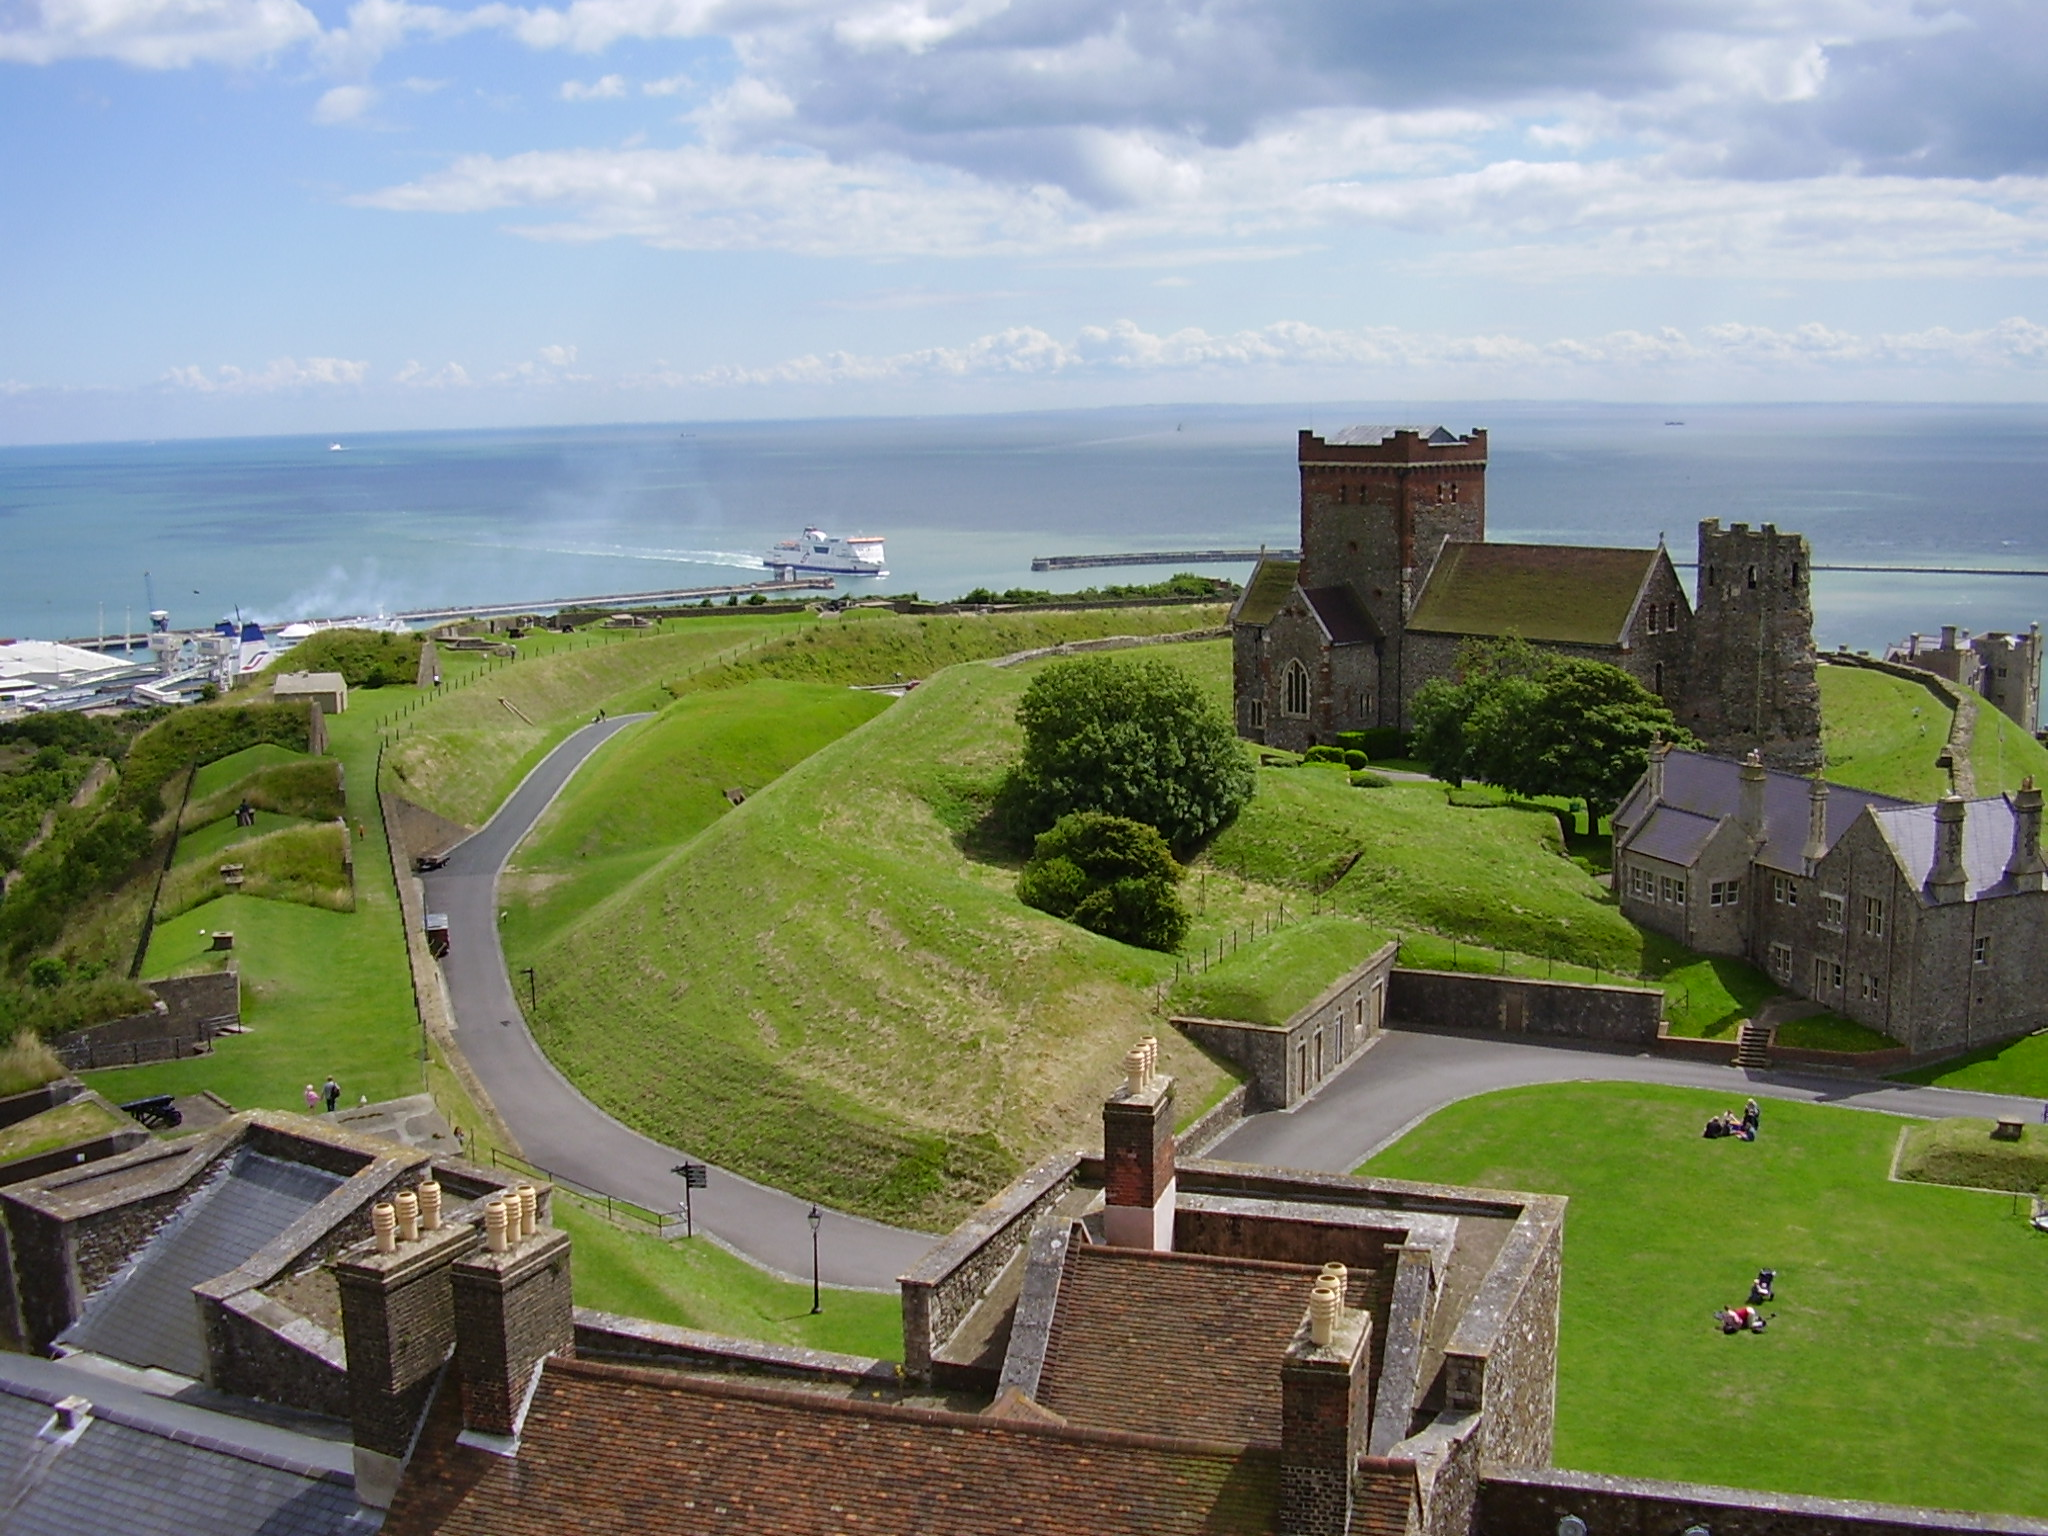 The view down from the Castle to the Church, possible Saxon burgh, and Harbour beyond.